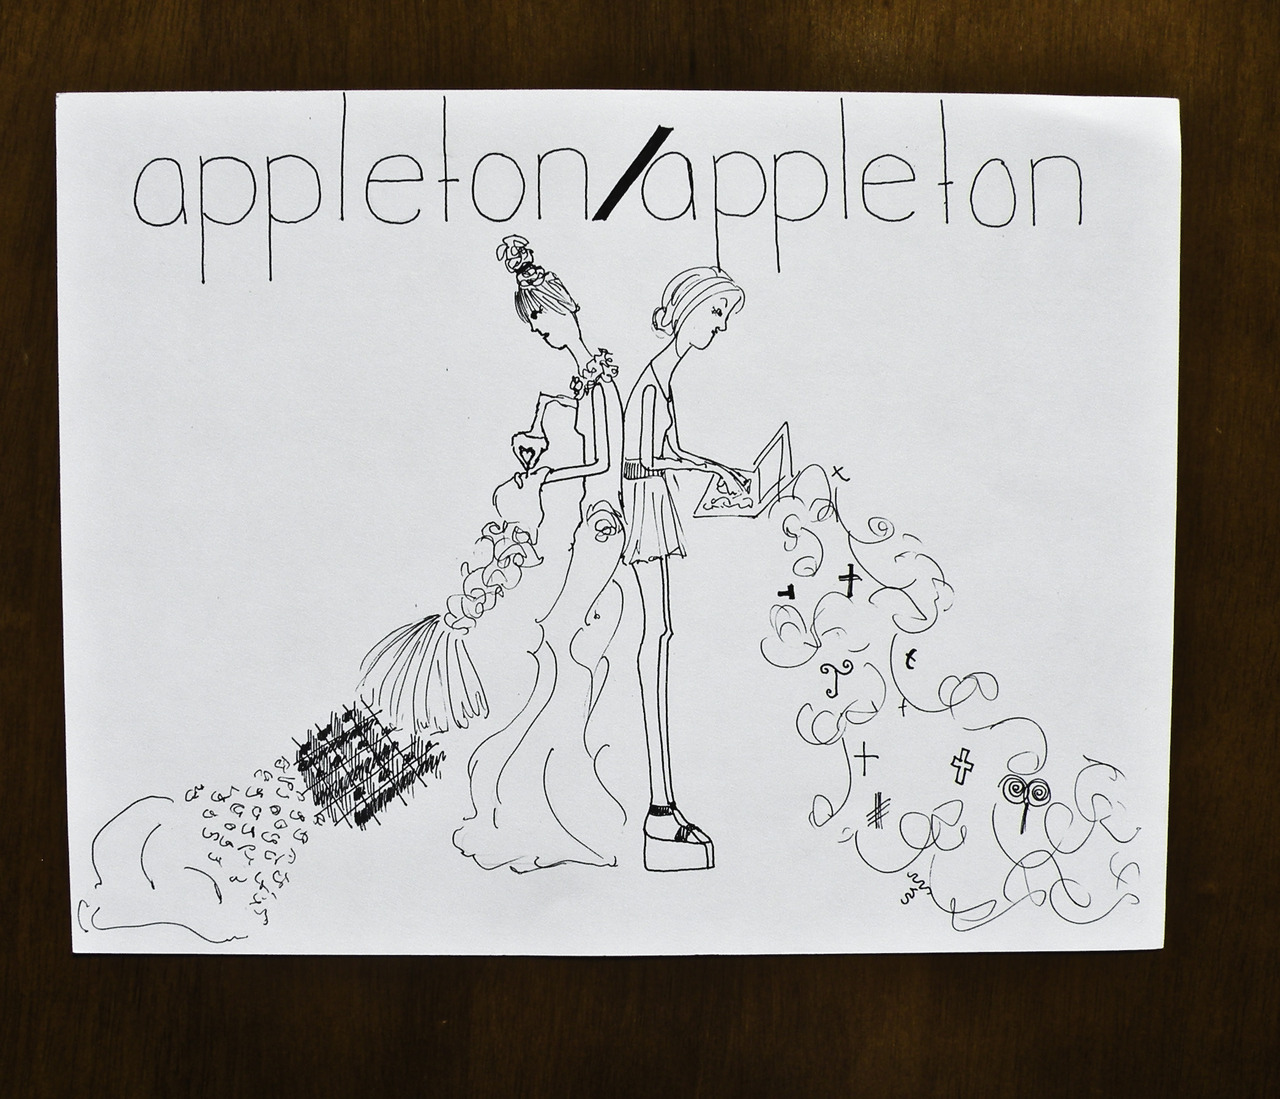 "my  sister  and i have a daydream about a joint company called appleton/appleton, or something else.   this is a drawing i did about it. i kind of imagined it as our future homepage. the ""/"" in appleton/appleton is quite unsettling, but as this is a sketch i think we'll all get over it.   kelly is sewing some kind of fantastical fabric, and i am designing, which usually looks like typing into a computer with steam and the letter T puffing out."